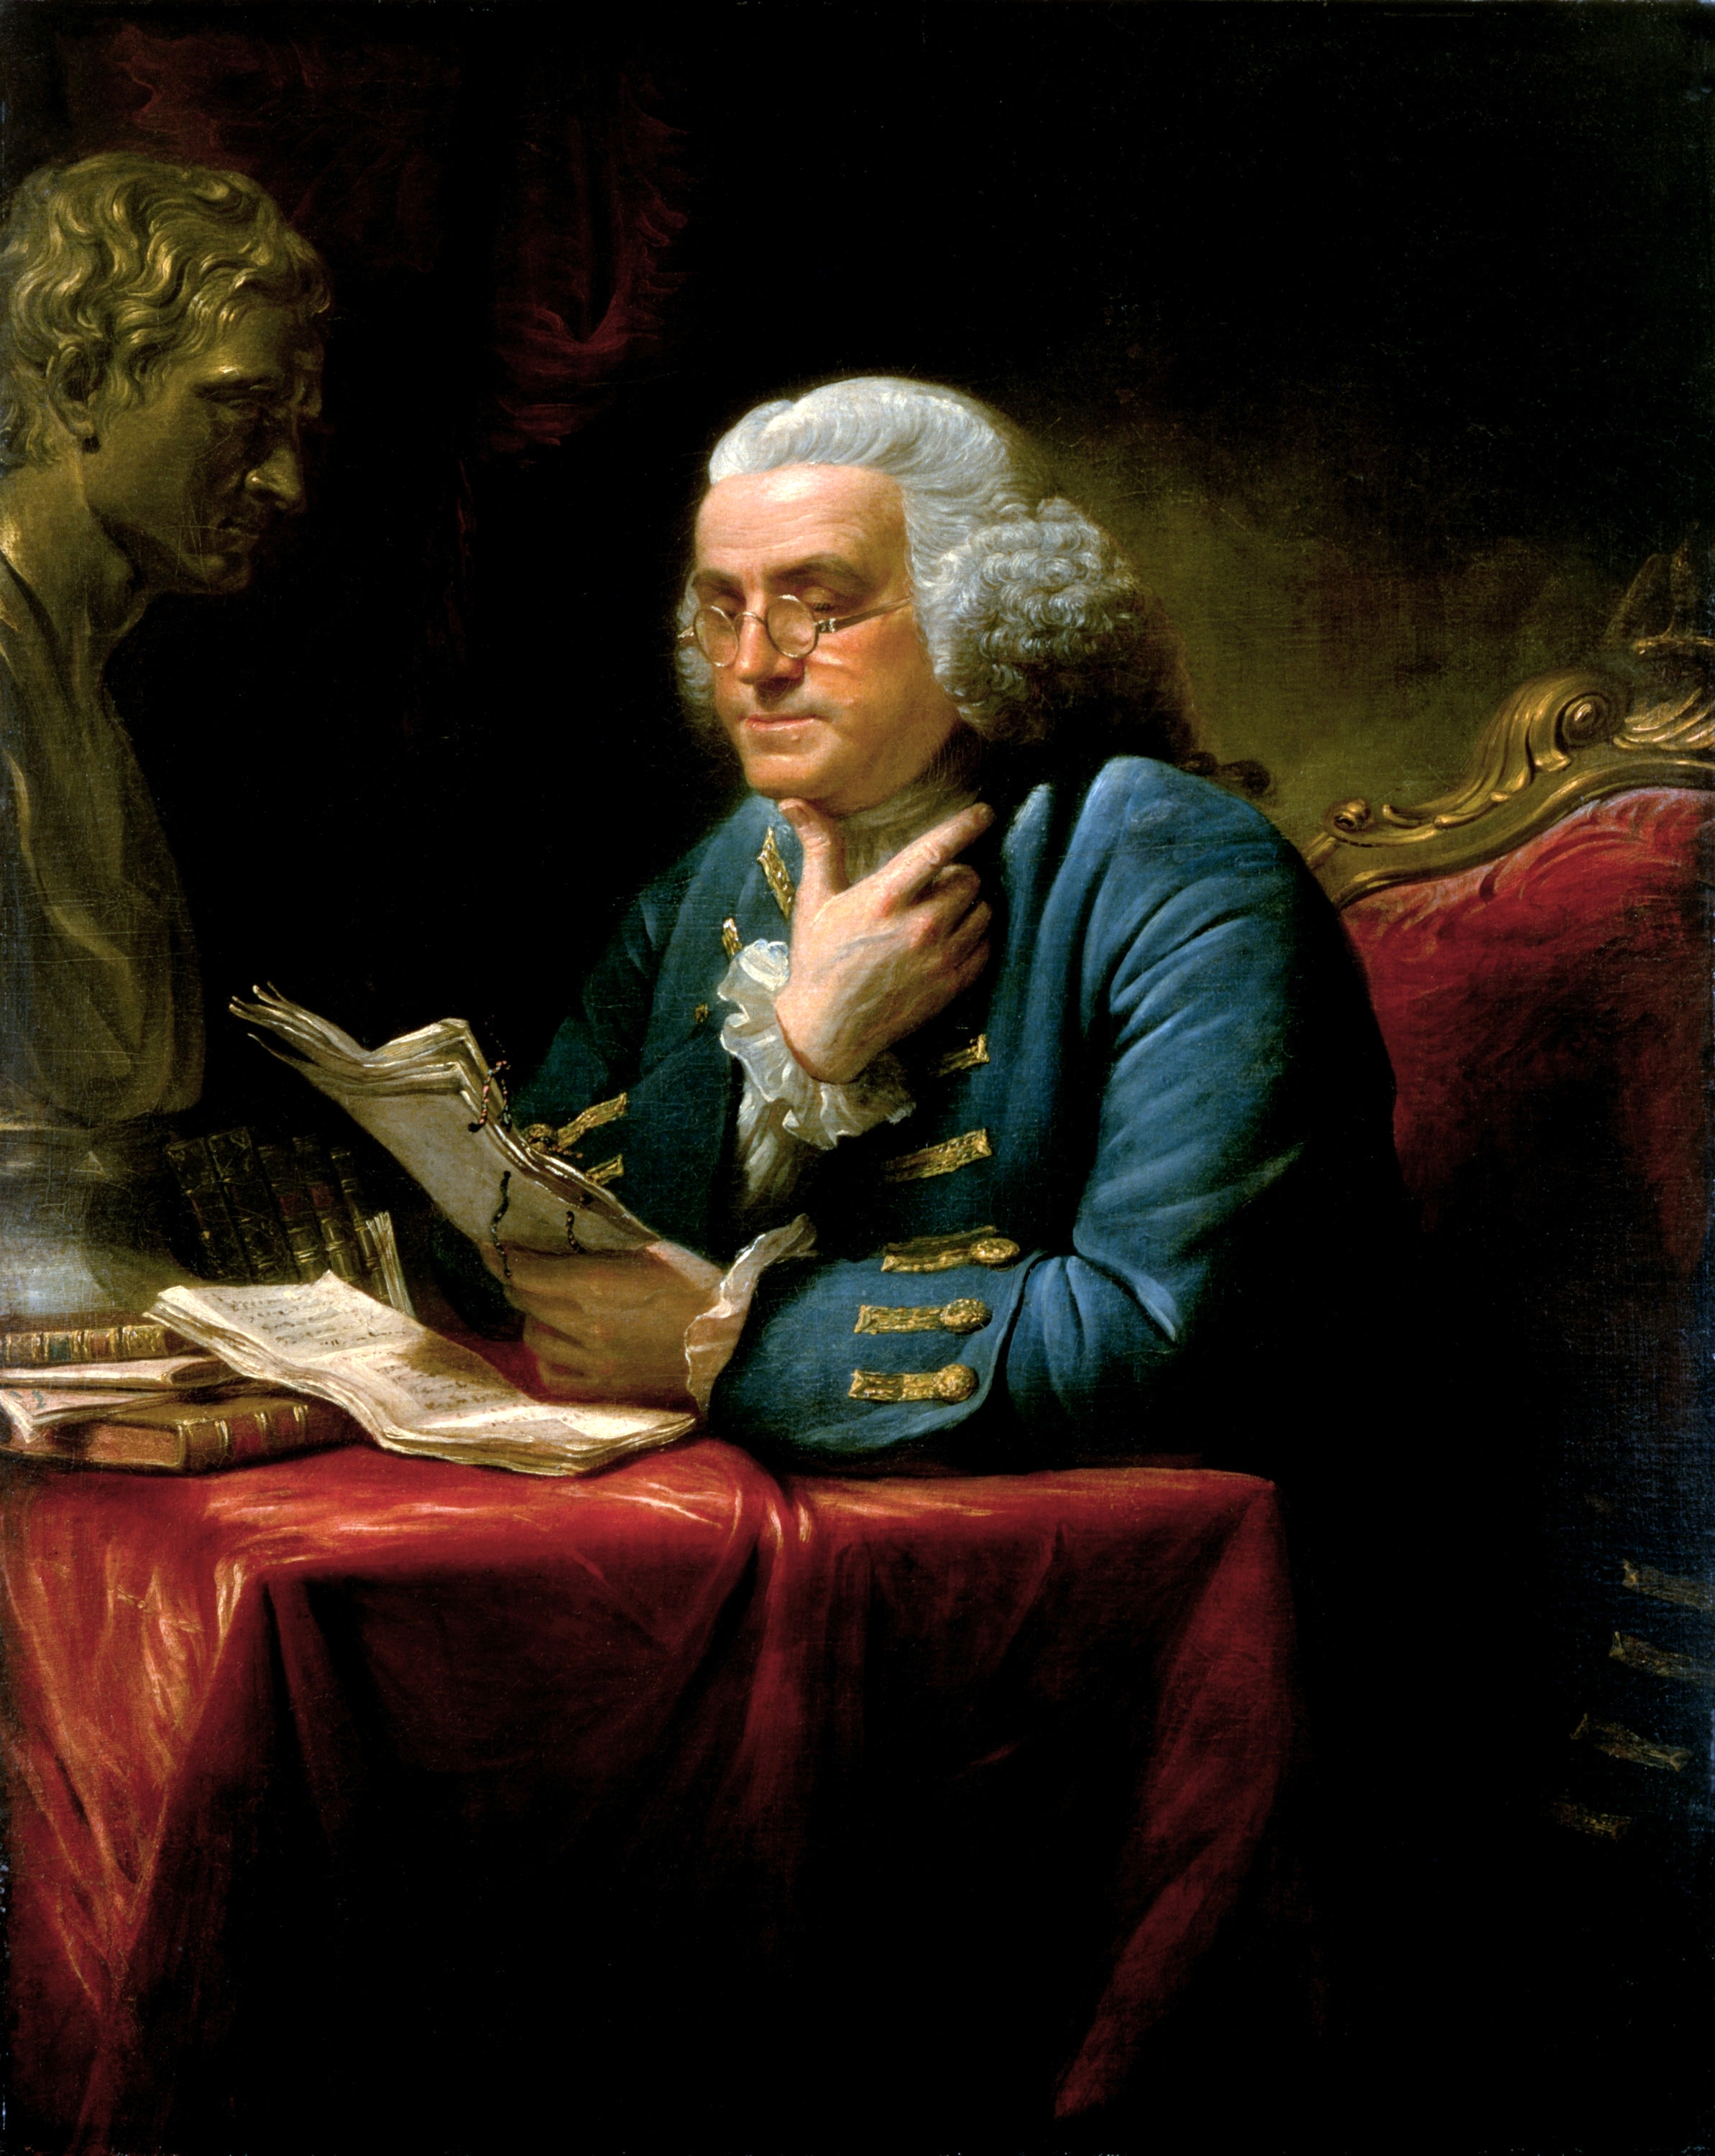 Portrait of Benjamin Franklin by David Martin brushes (in English), 1767, kept in the White House, Washington.